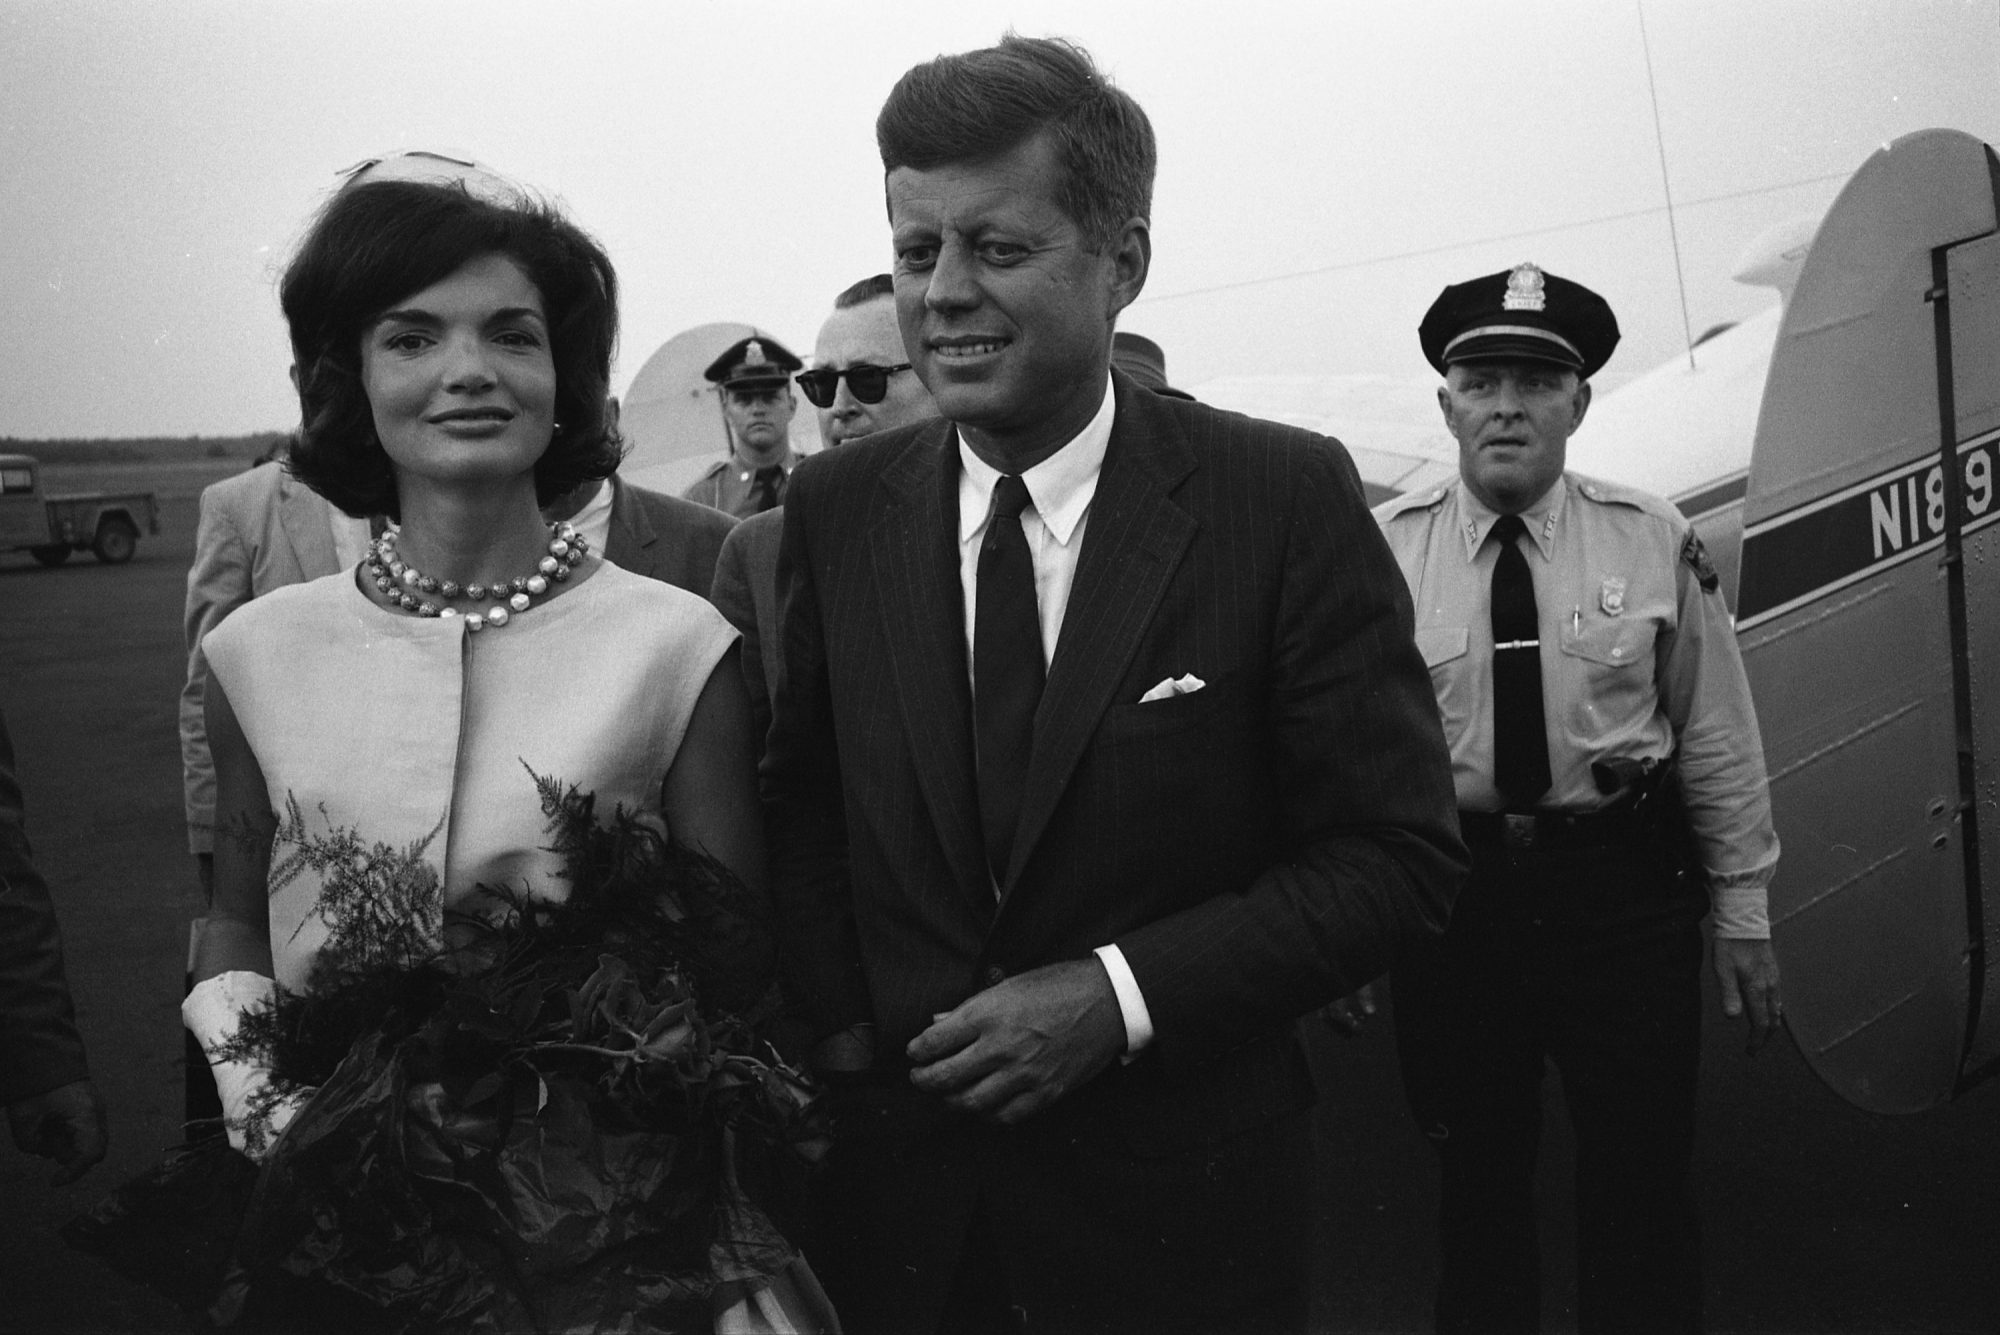 Jackie and John F. Kennedy in 1963